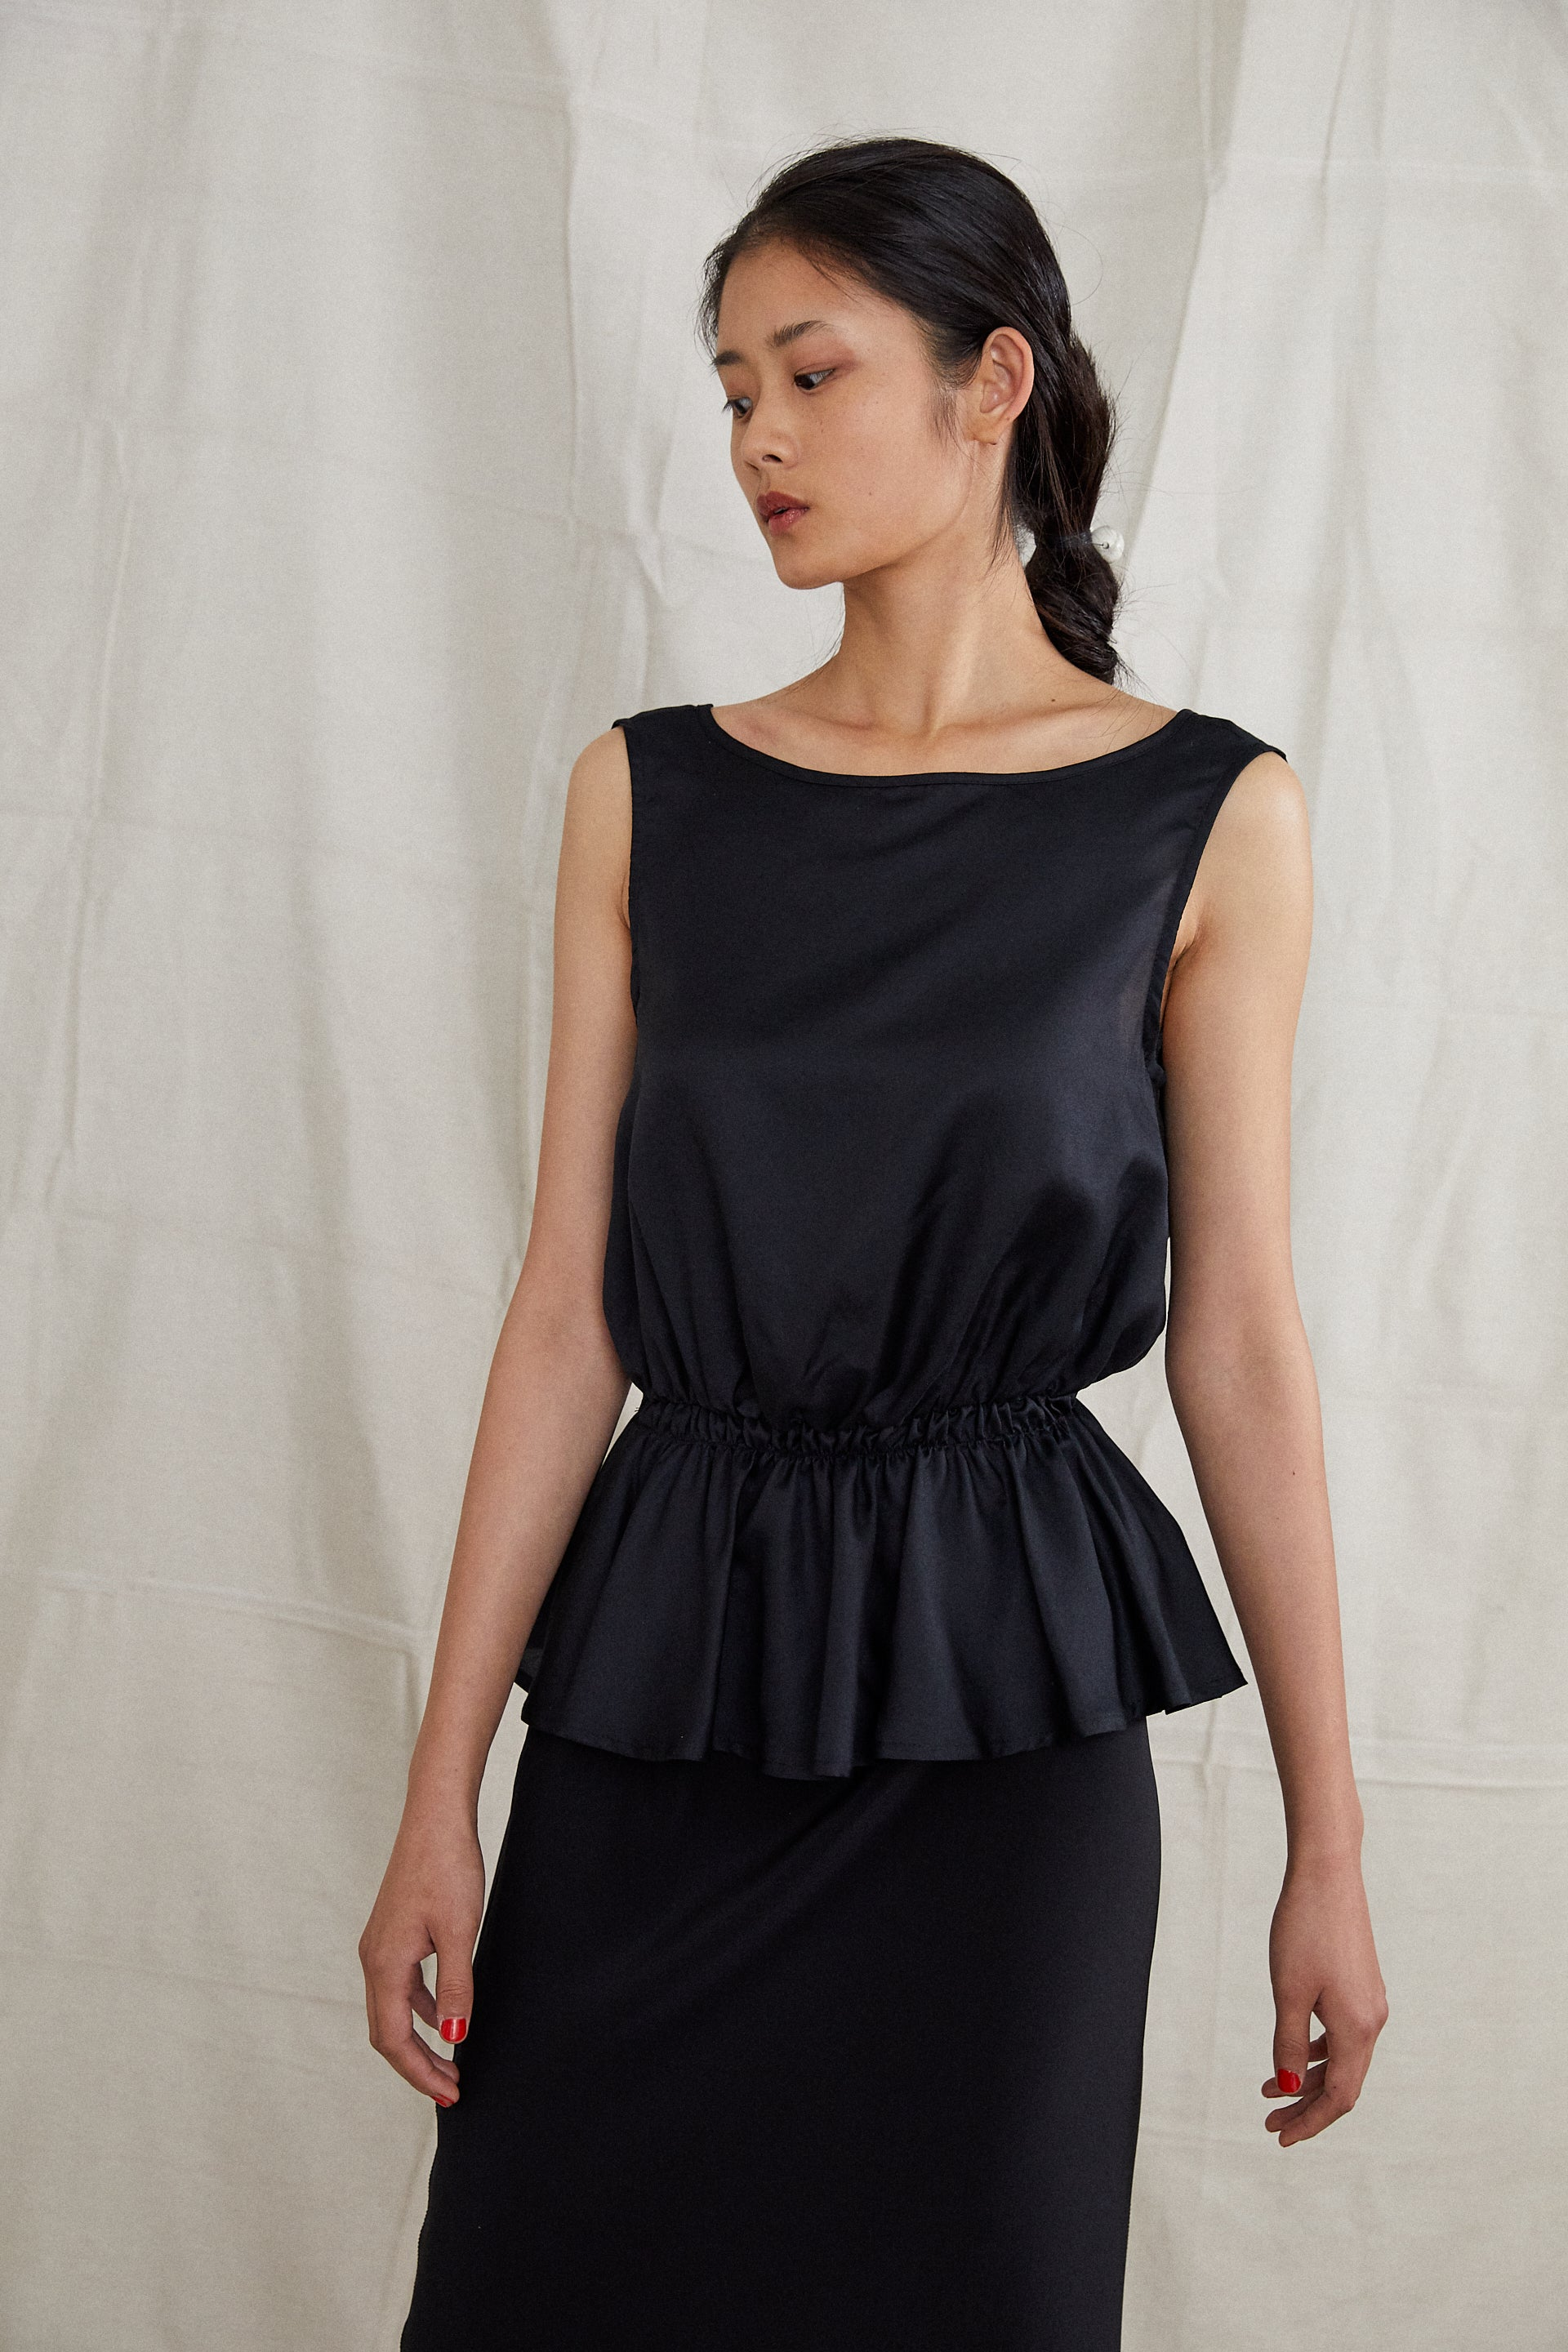 Harbin Top - Onyx Silk